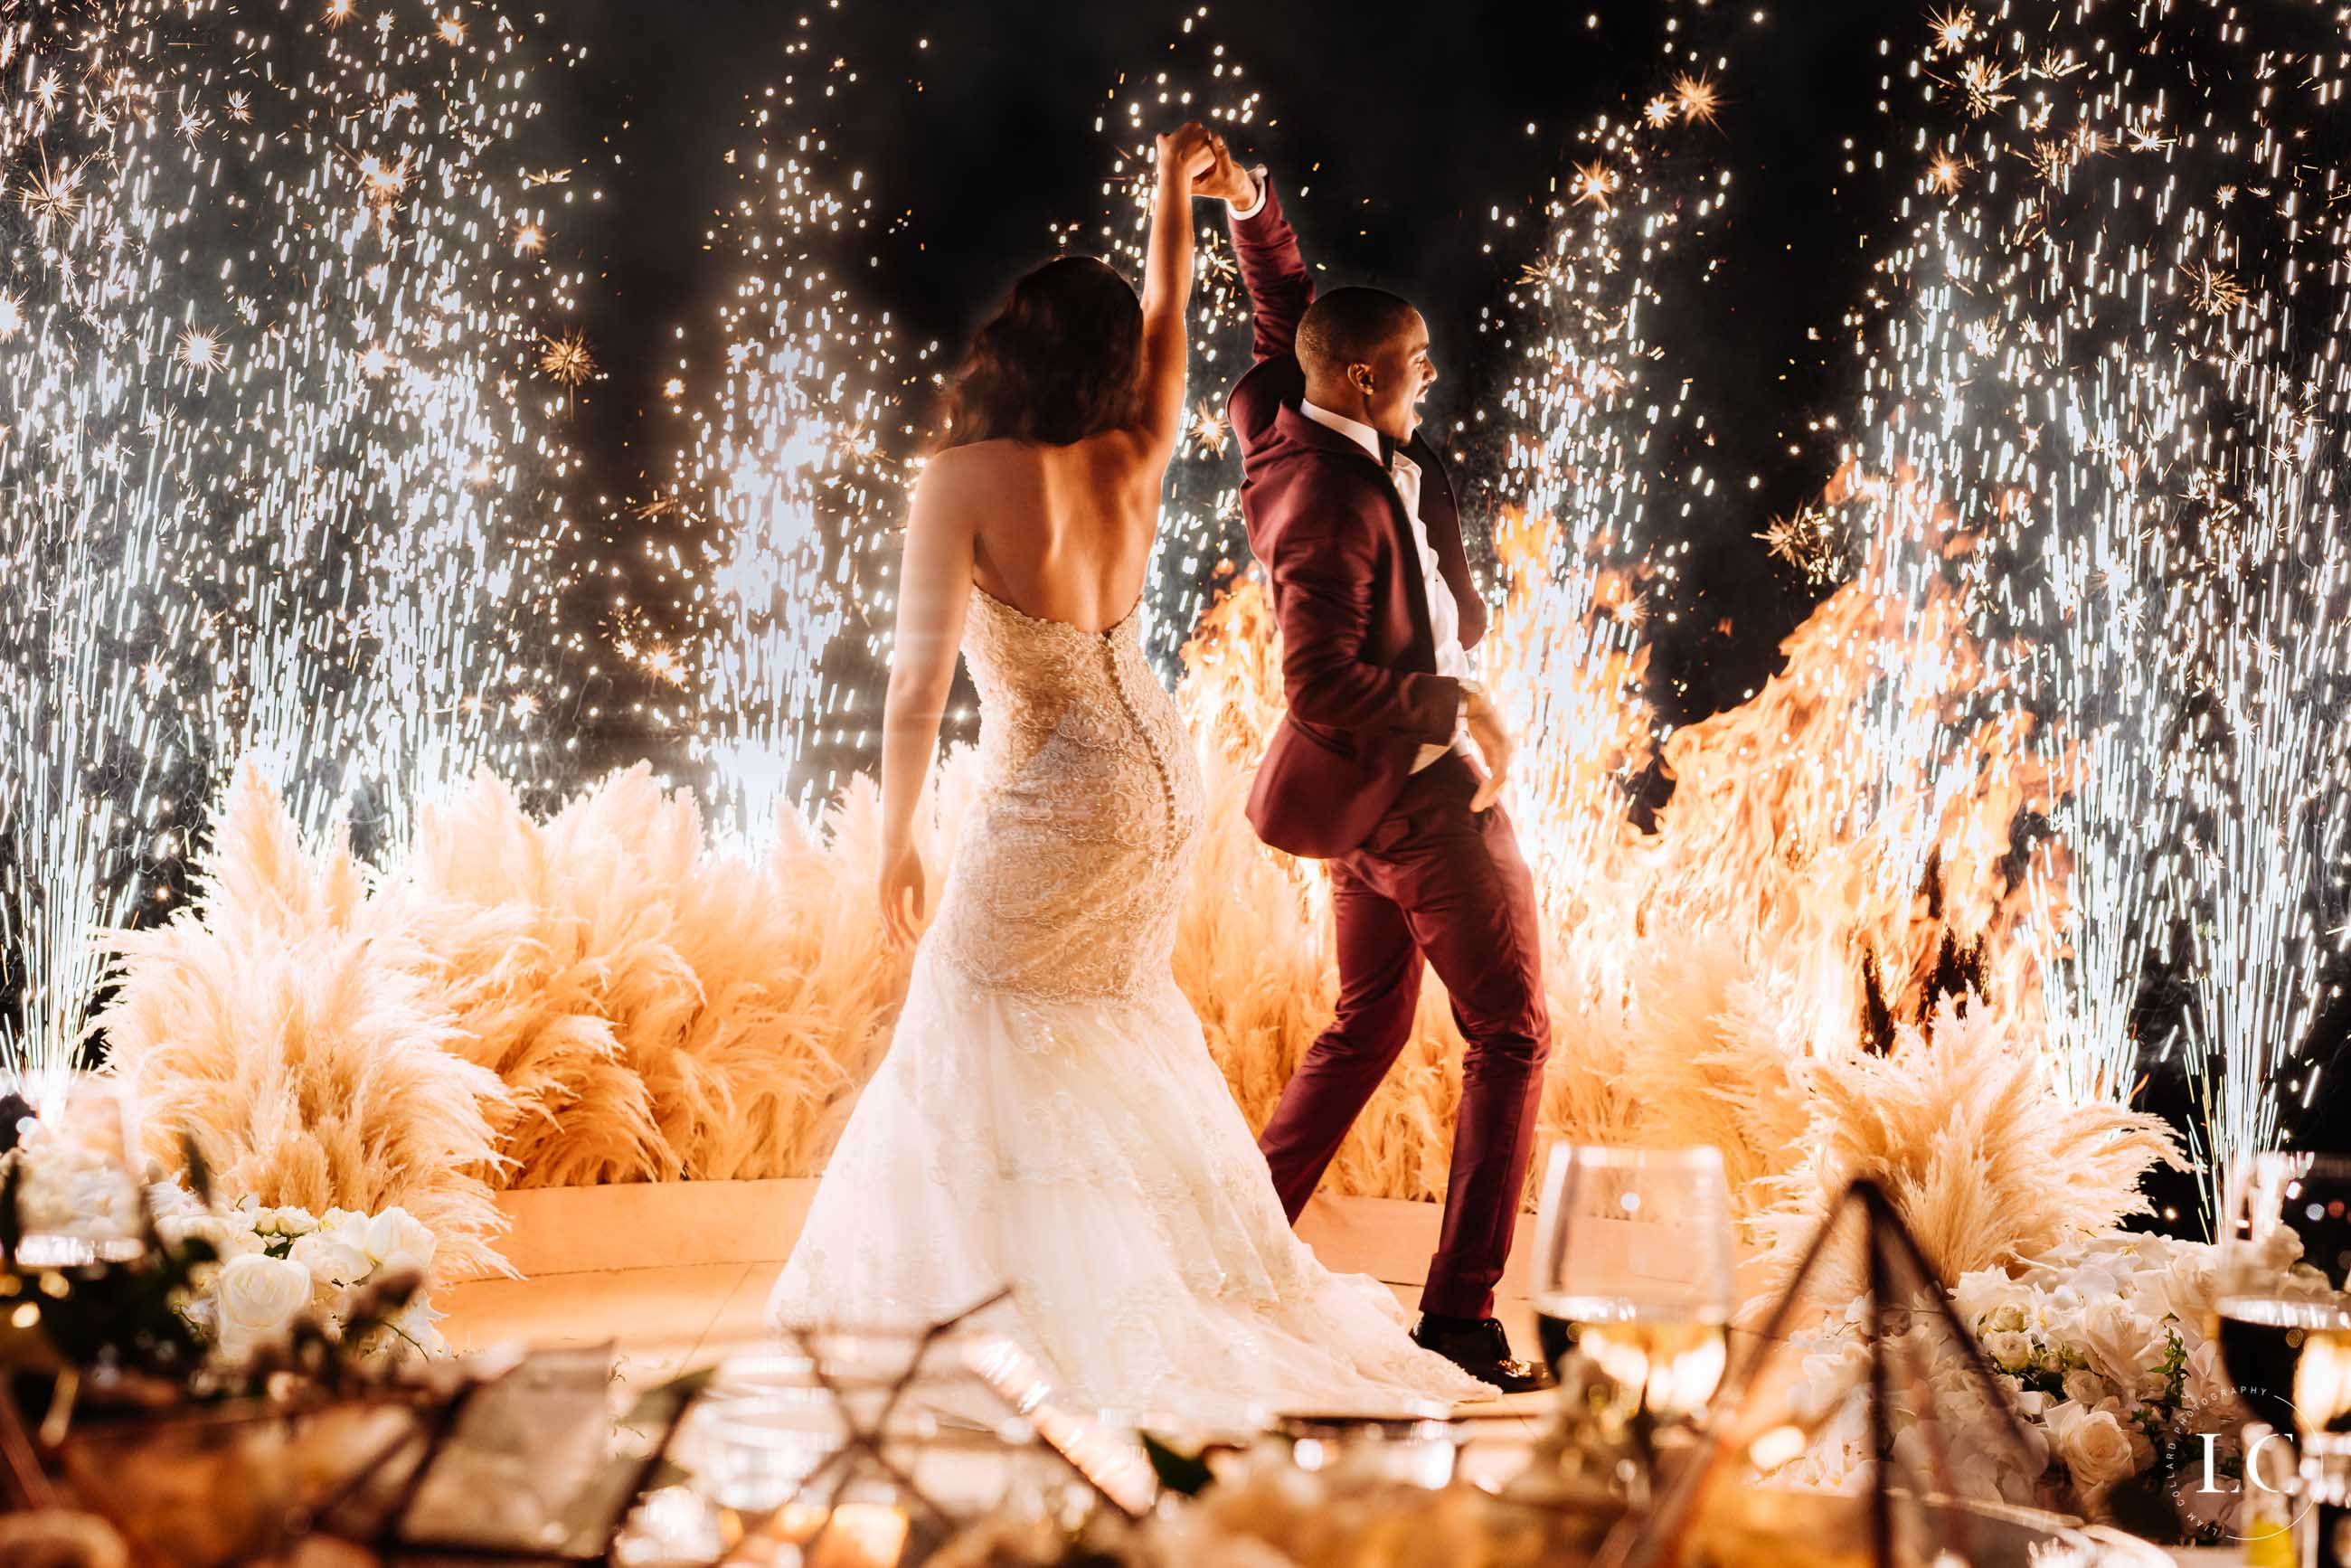 Couple dancing with fireworks